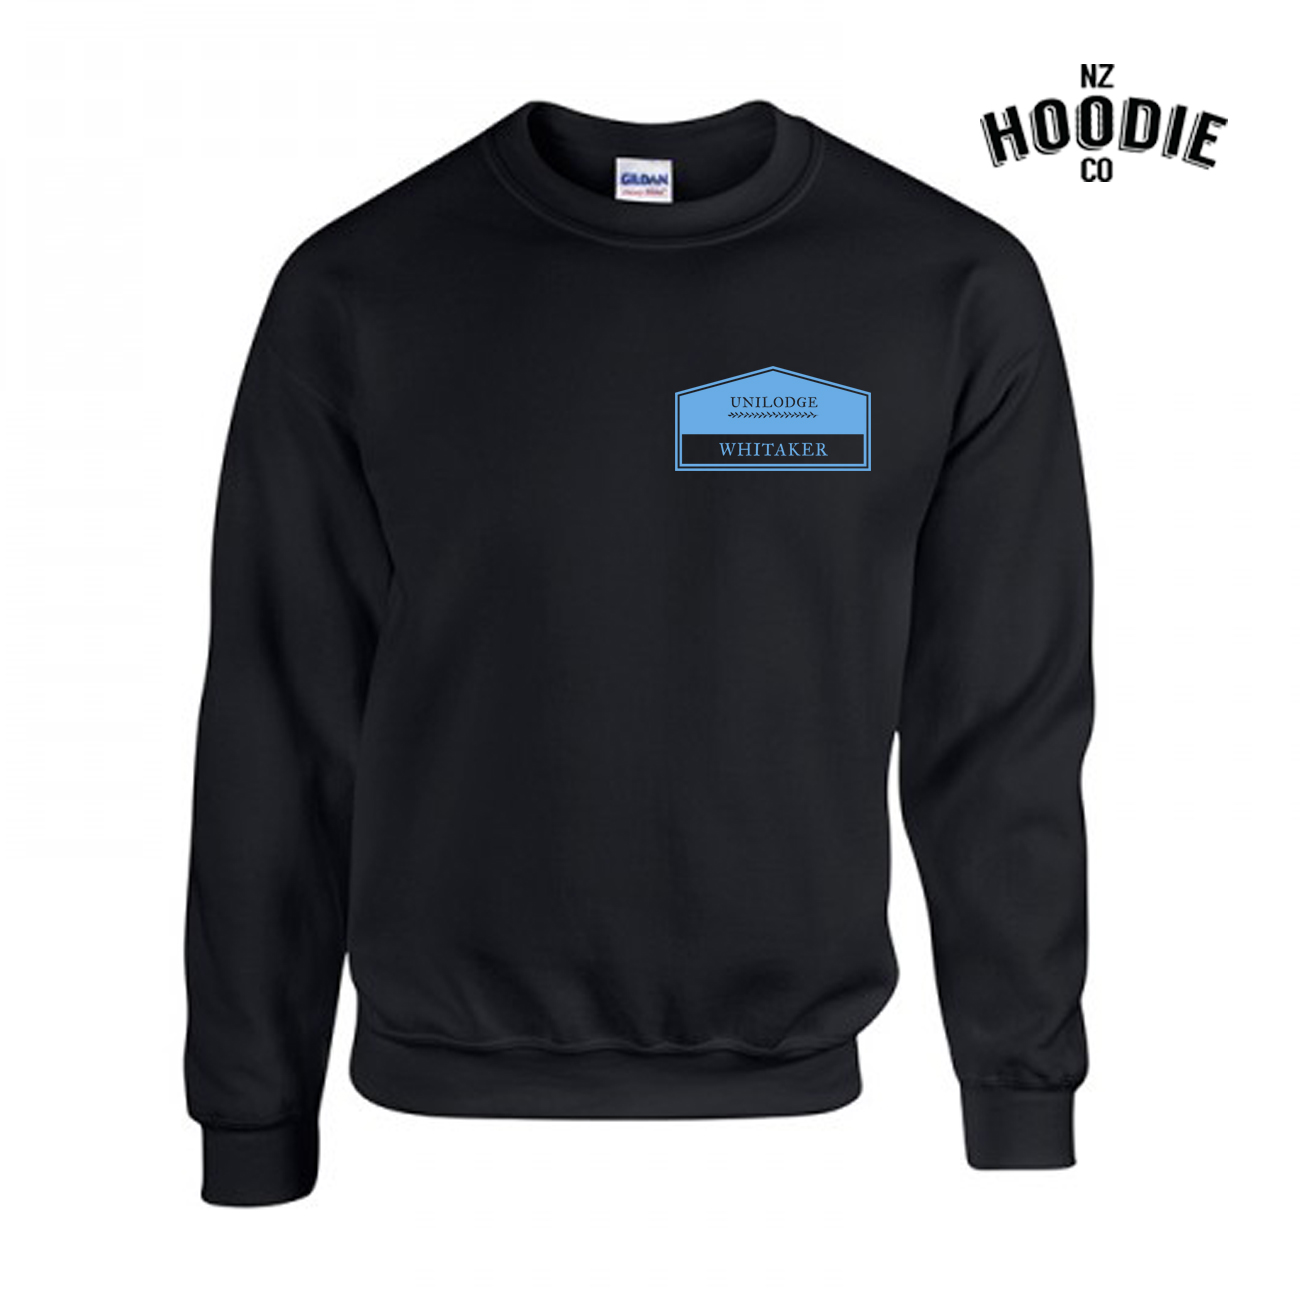 UniLodge Whitaker design on Crew Neck LIGHT BLUE.jpg